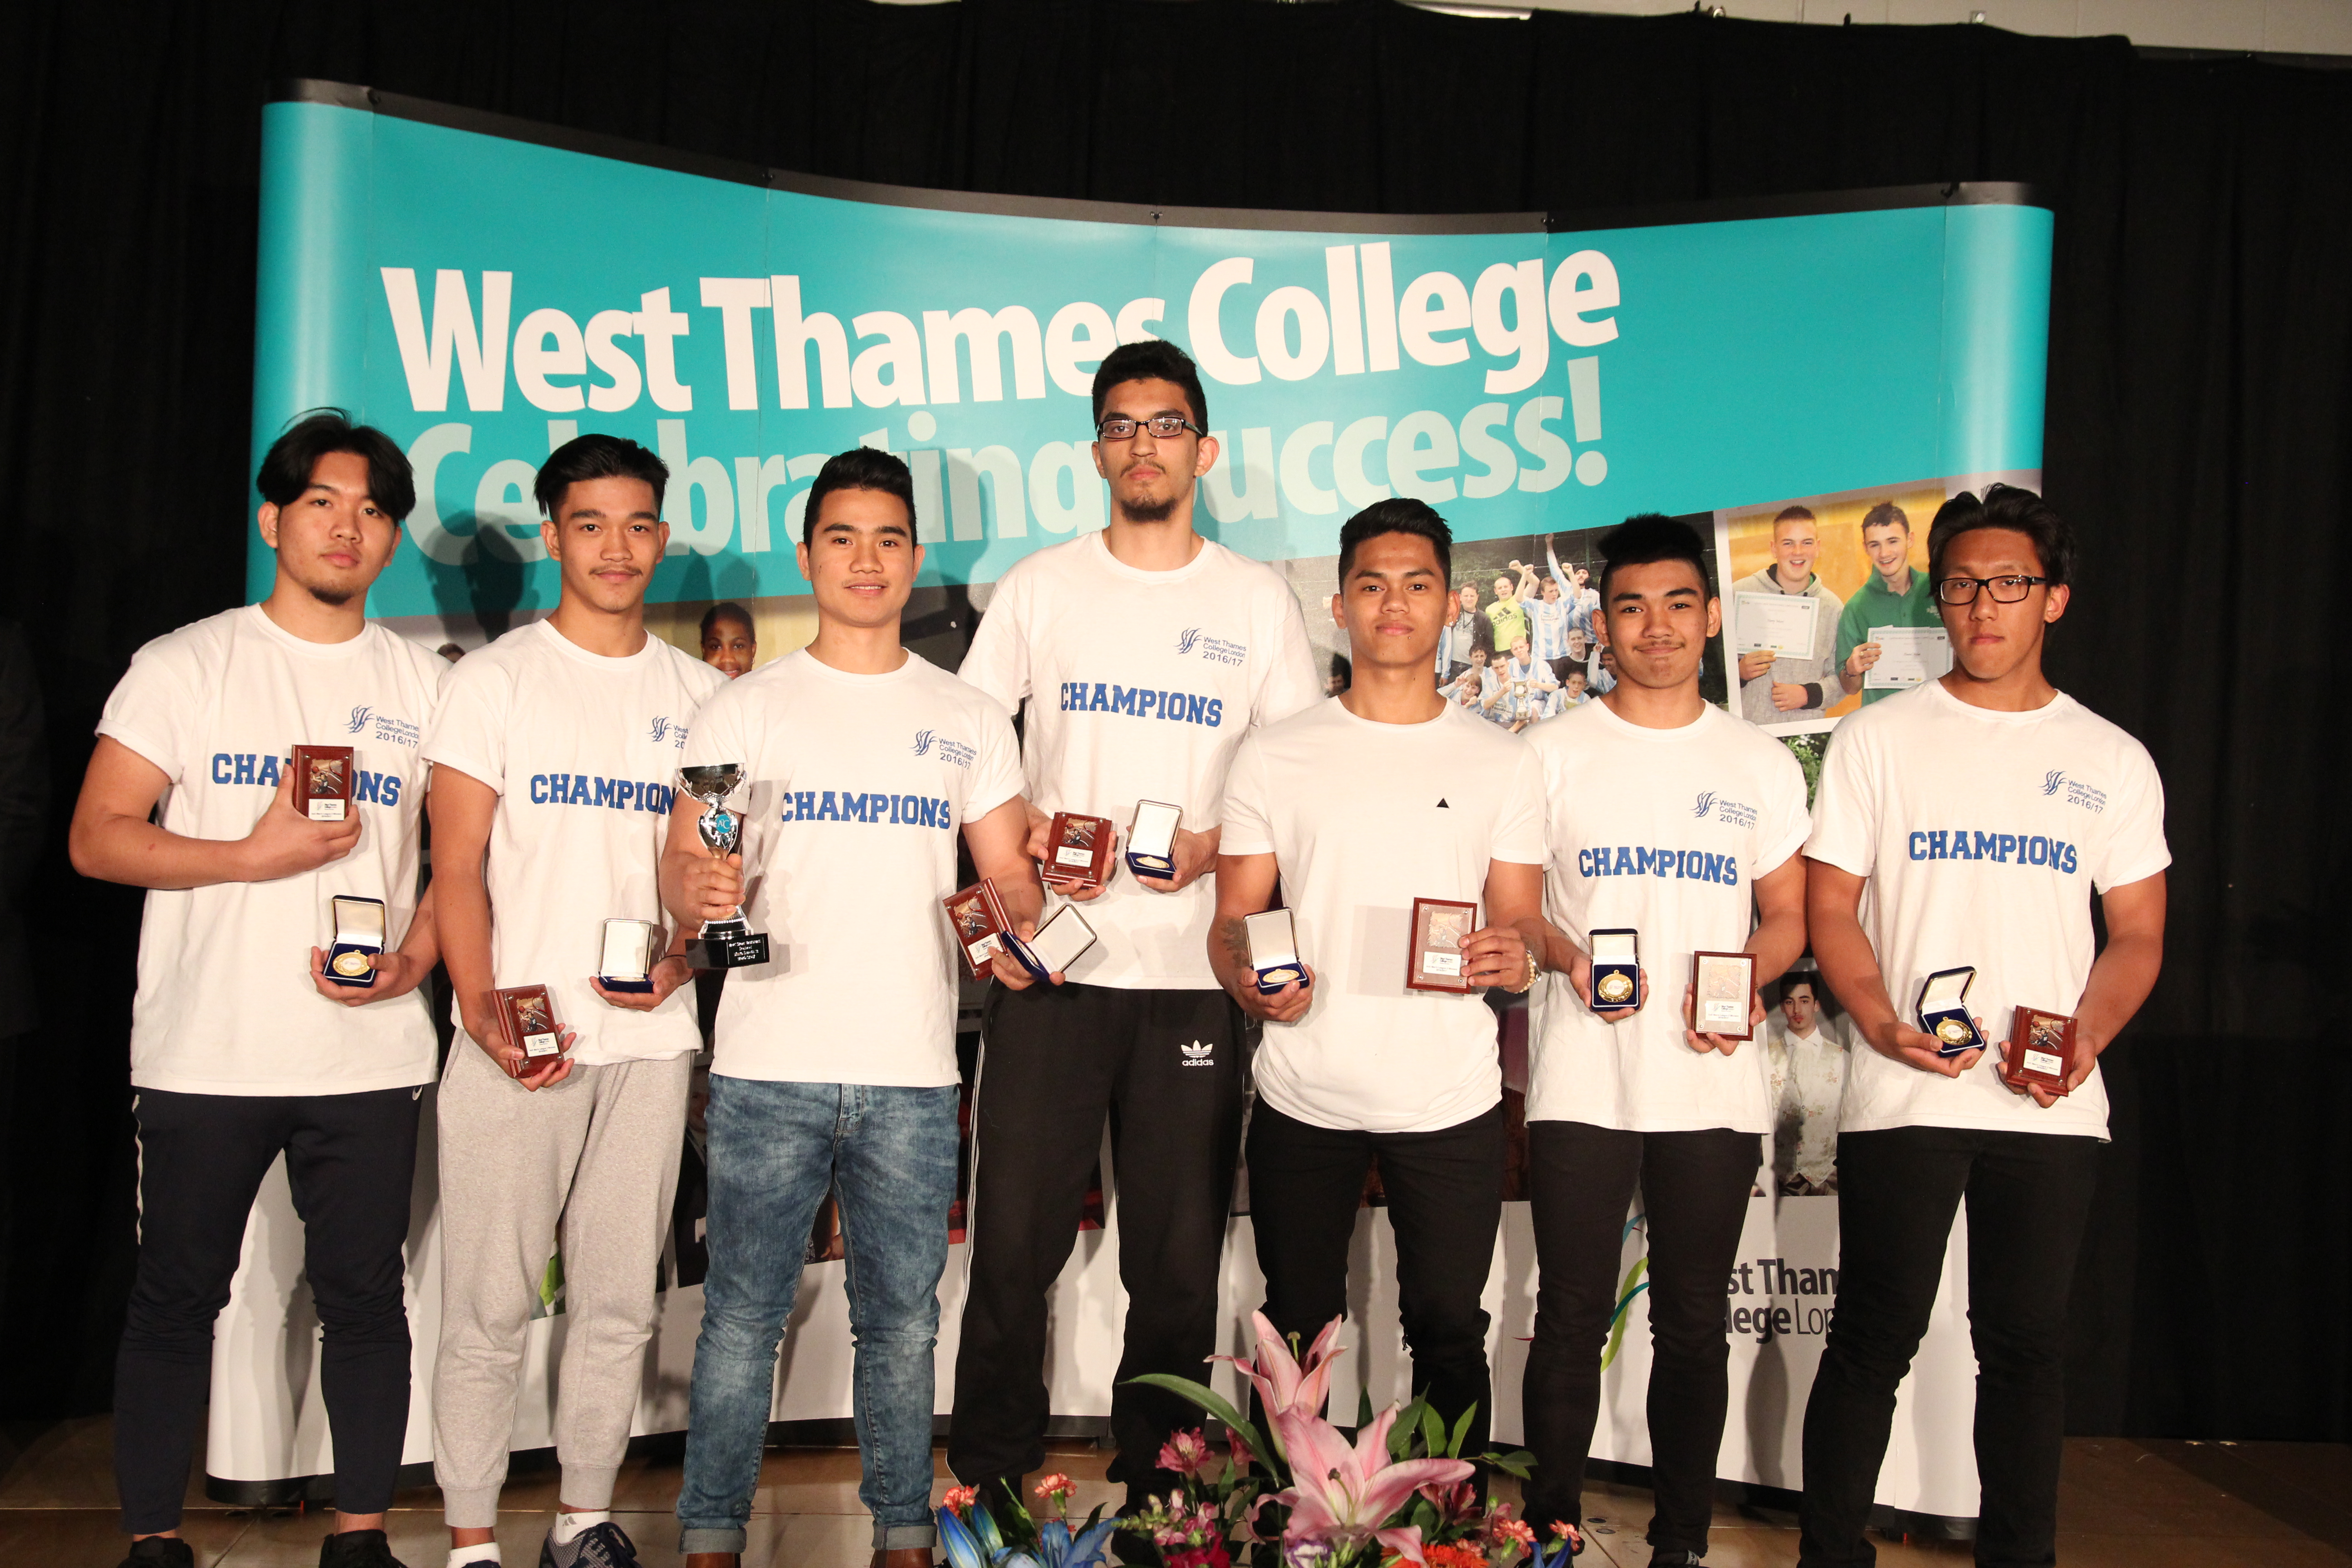 West Thames College Basketball Team